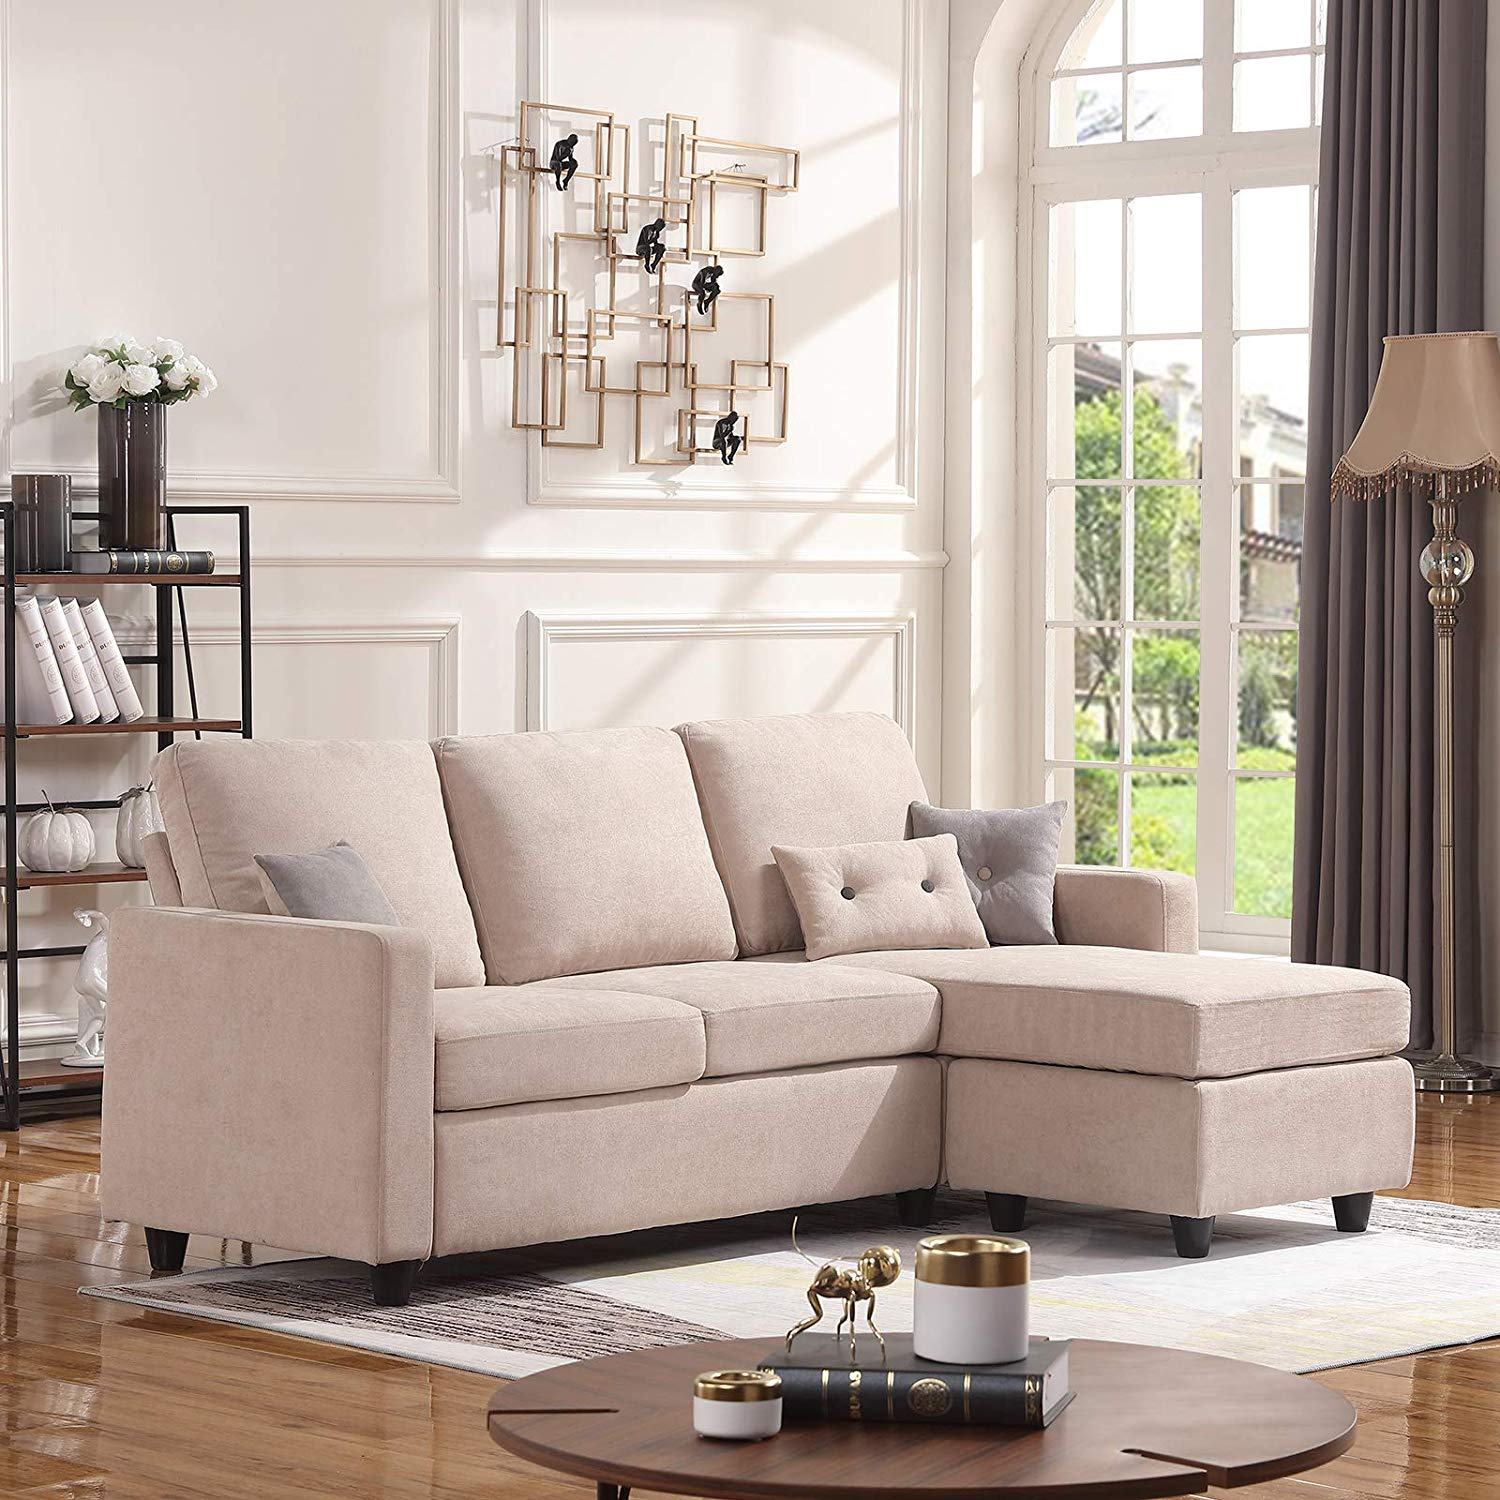 Details about A Convertible Sectional Sofa Couch, L-Shaped Couch Modern  Fabric For Small Space